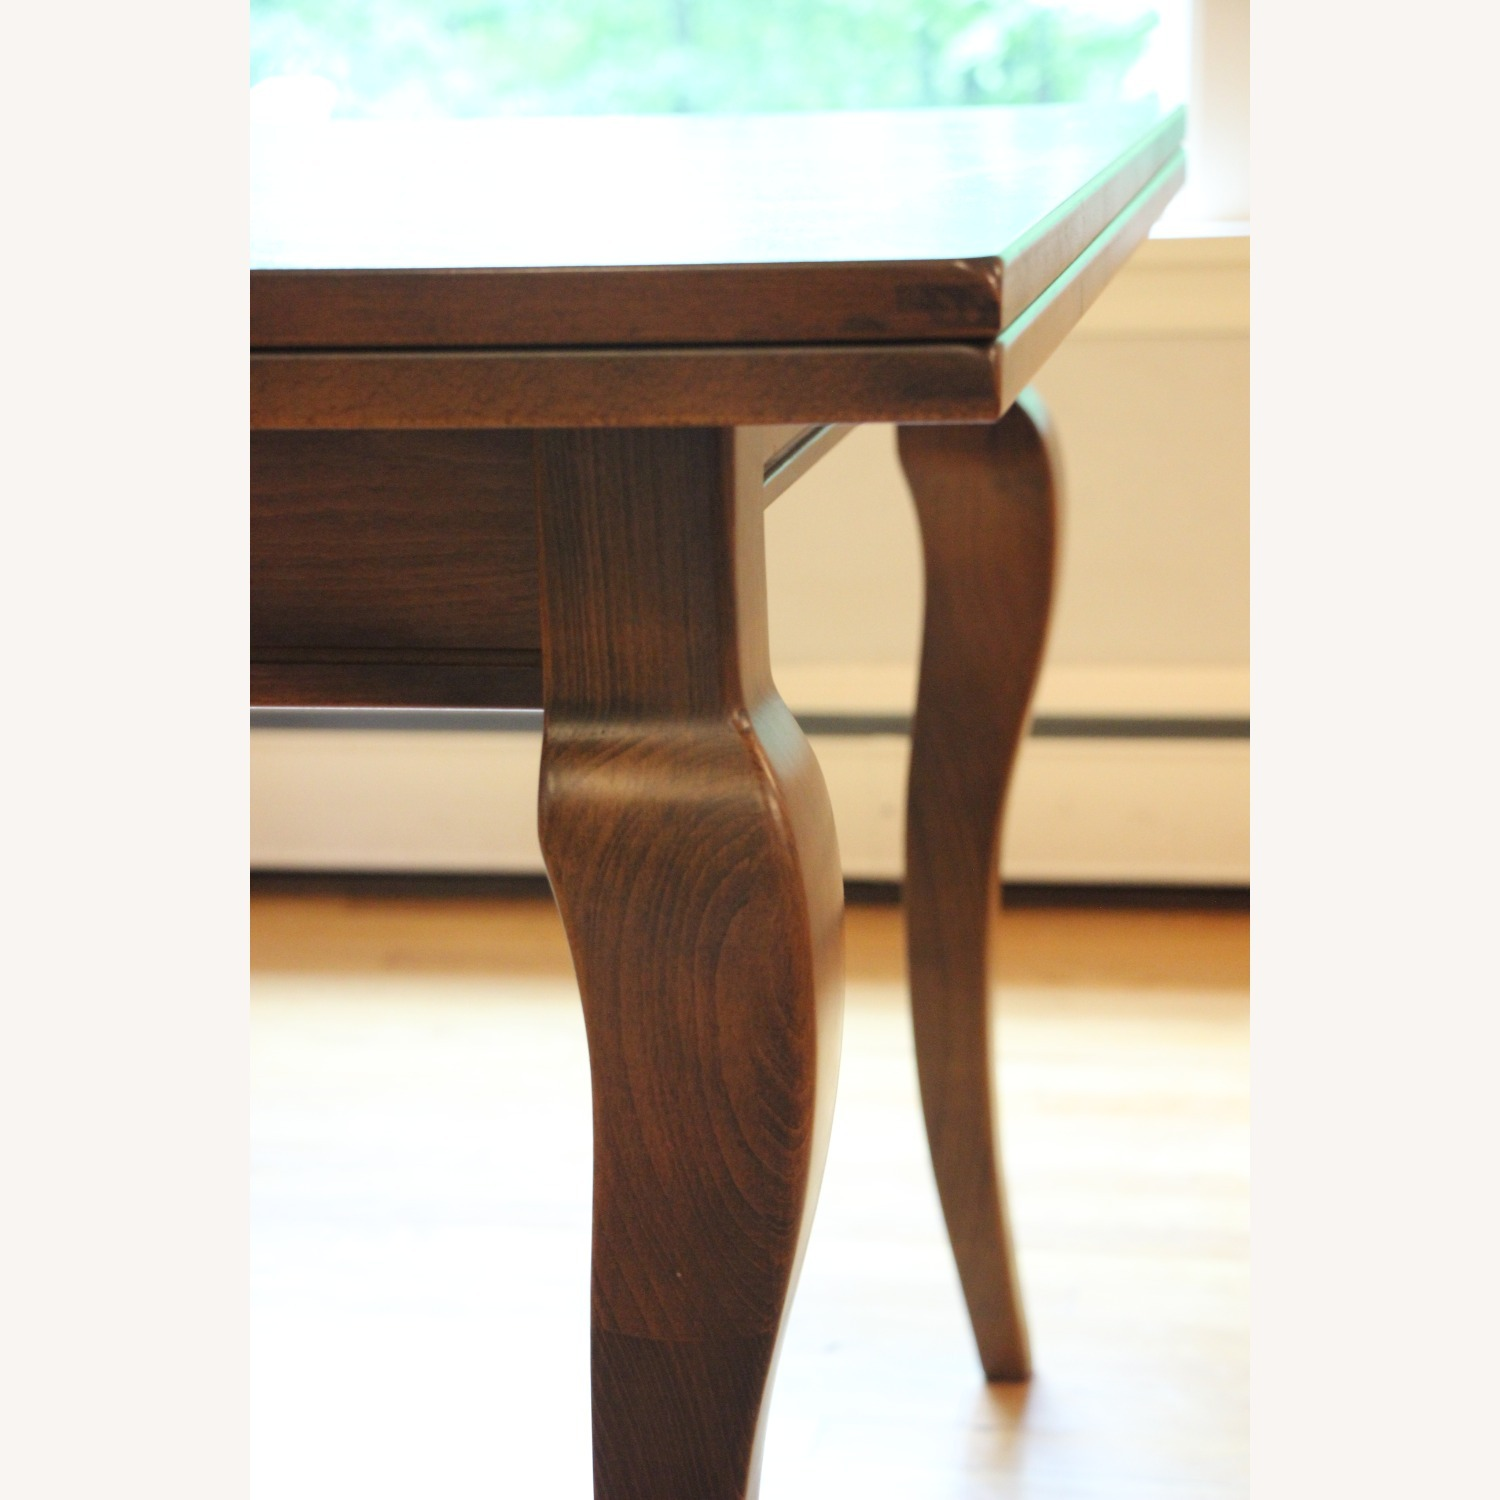 Arhaus Maple Dining Table and Chairs - image-1